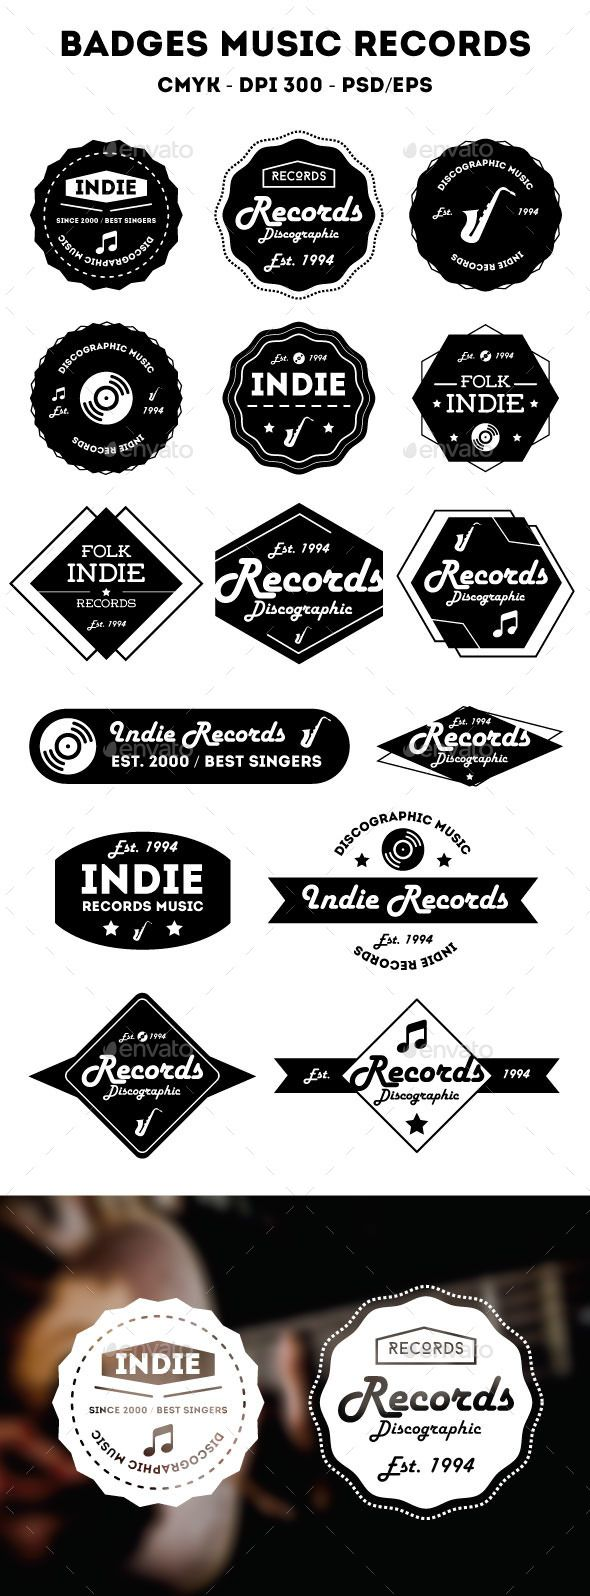 Music Badges | Pinterest | Badges, Psd templates and Template